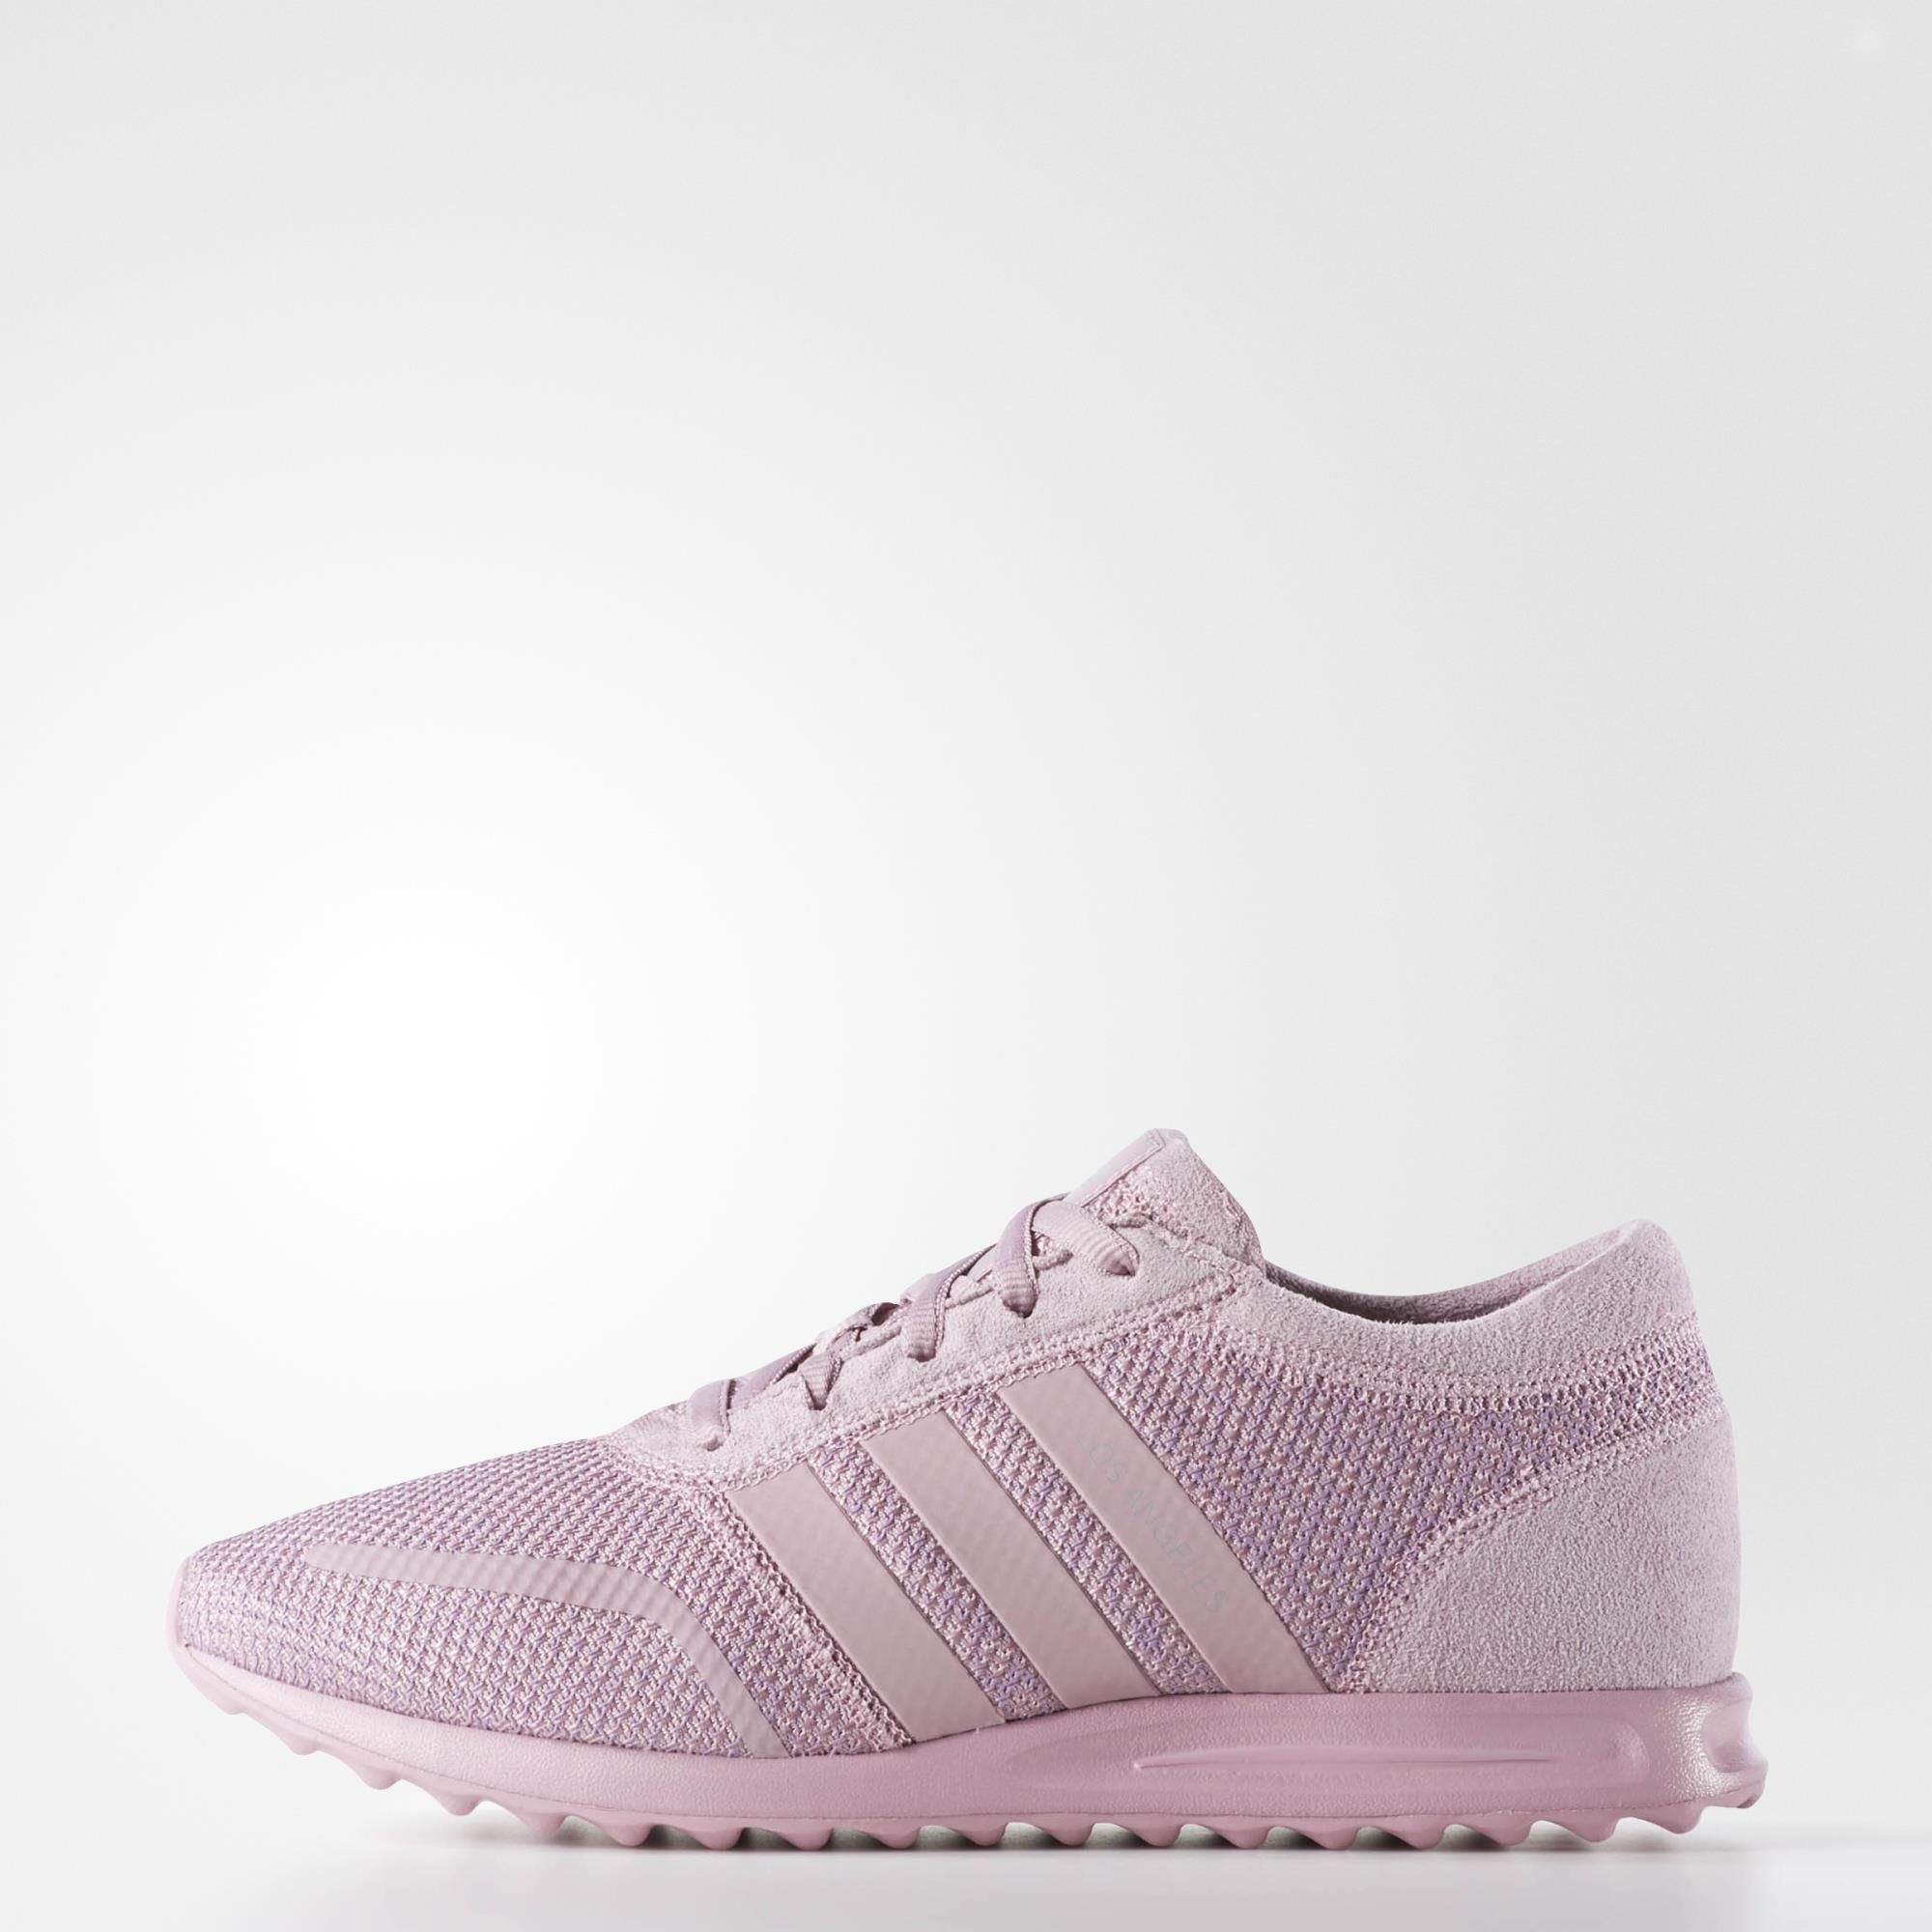 Adidas Los Angeles Such cute shoes that I absolutely love like soooo much  but they're just a little too big :( it's pretty much impossible to find  this ...